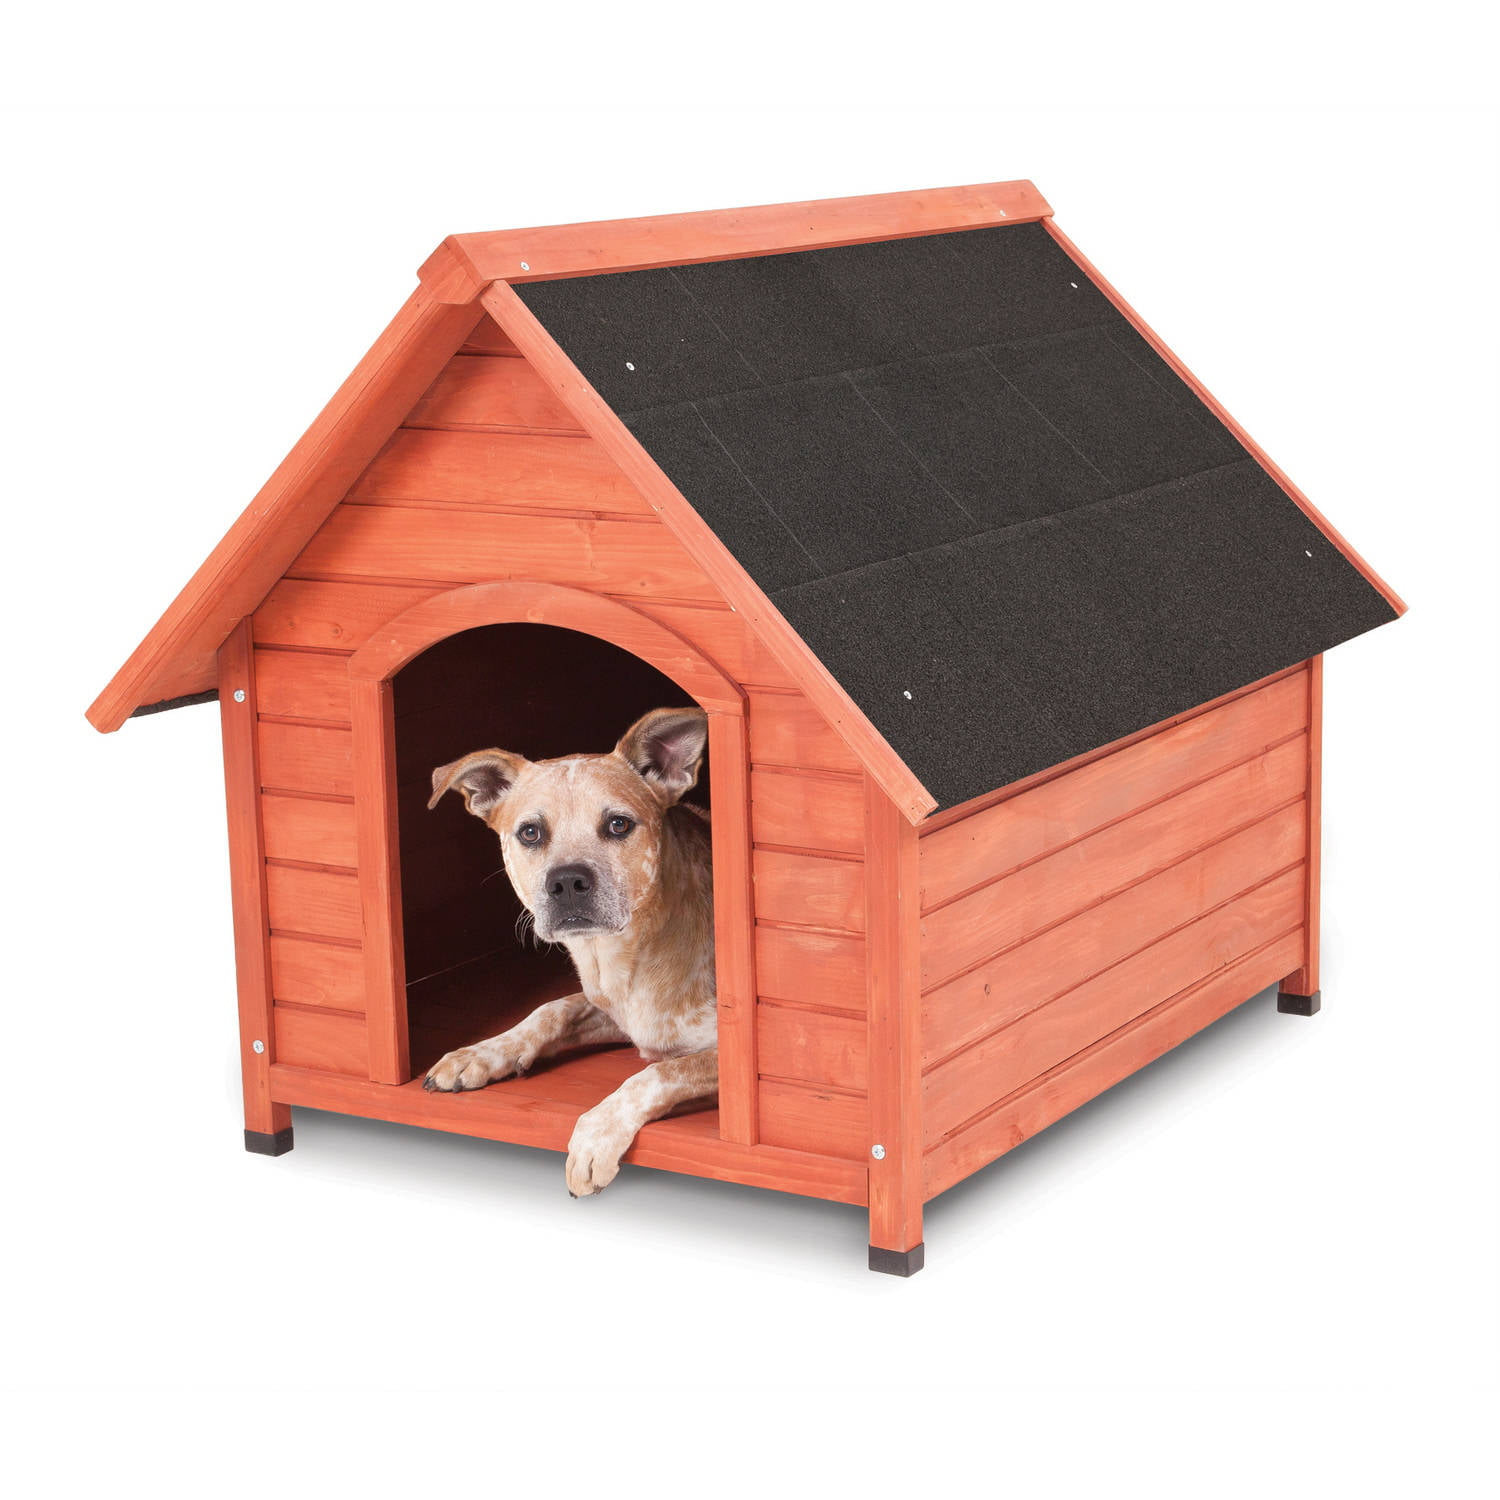 doskocil peak wood dog house for medium dogs, 50-70 lbs - walmart